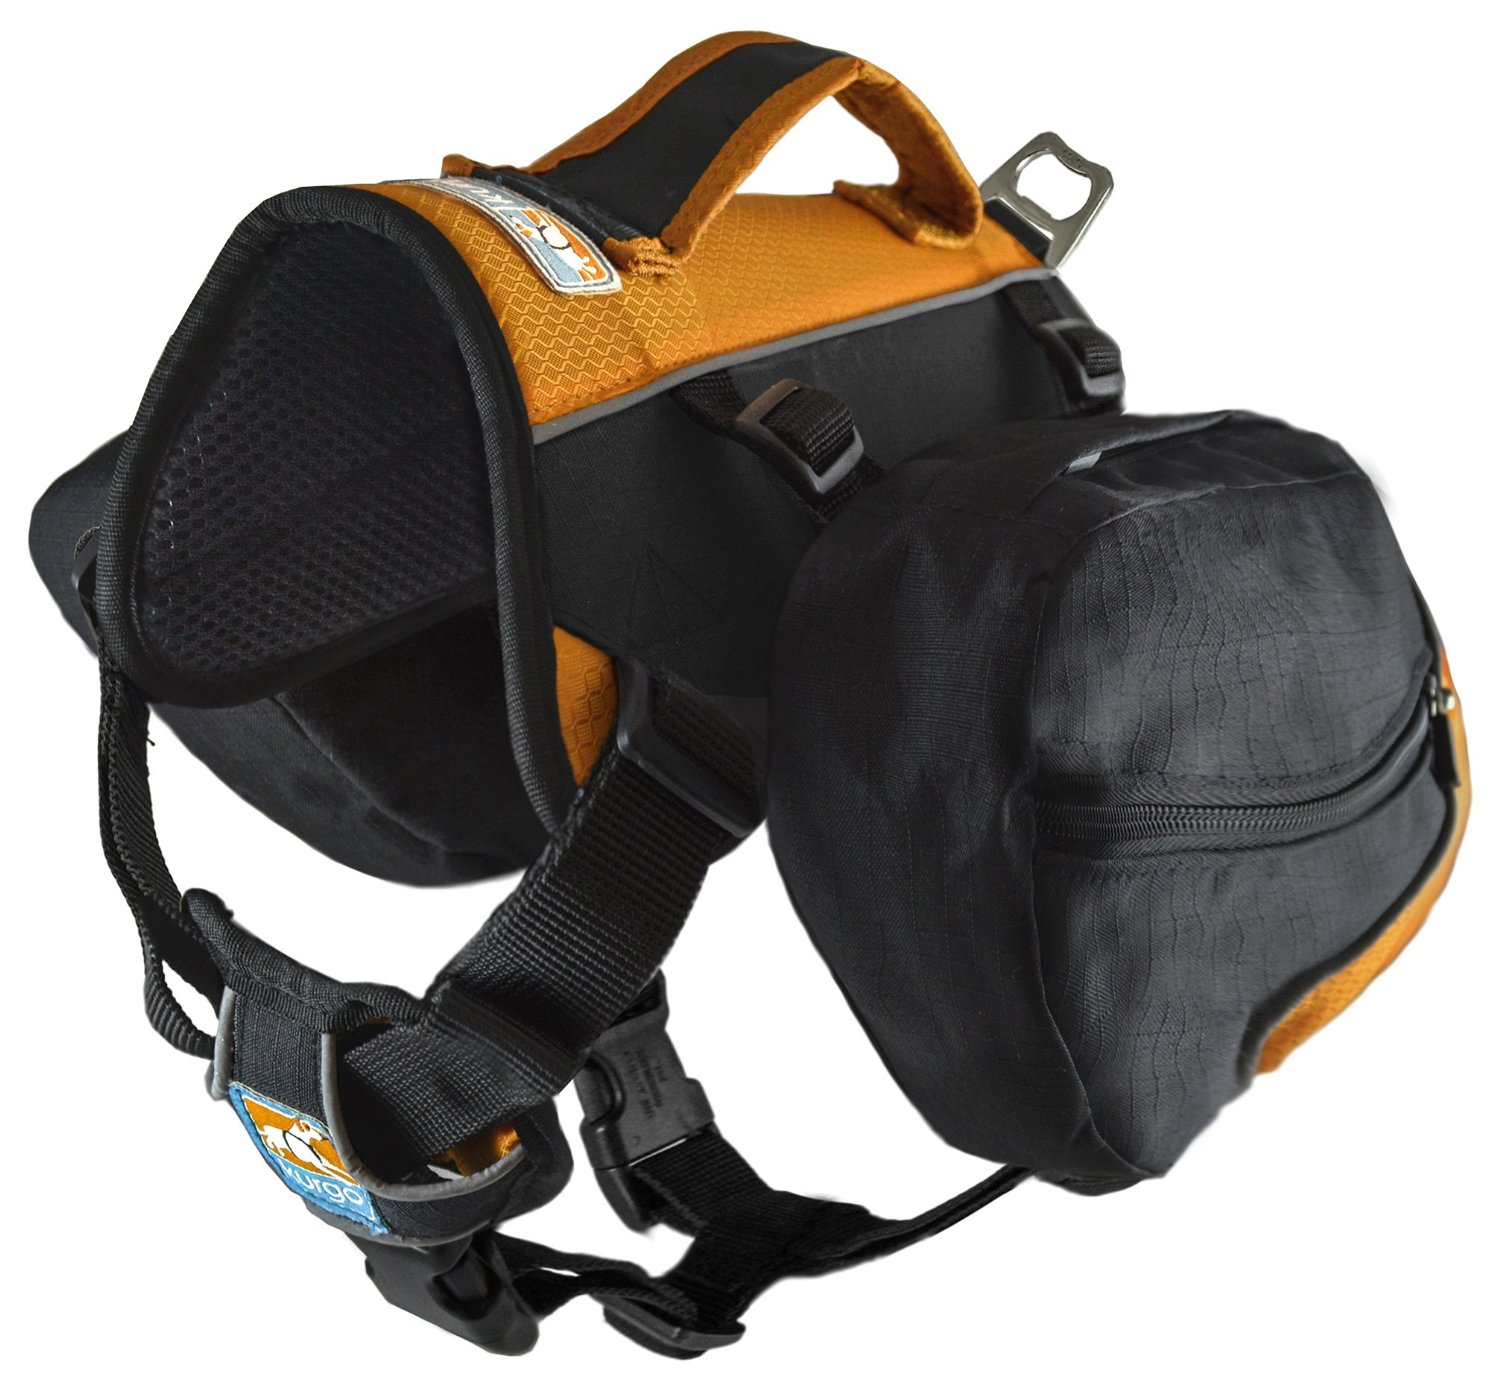 Backpack Dog Harness | Cg Backpacks